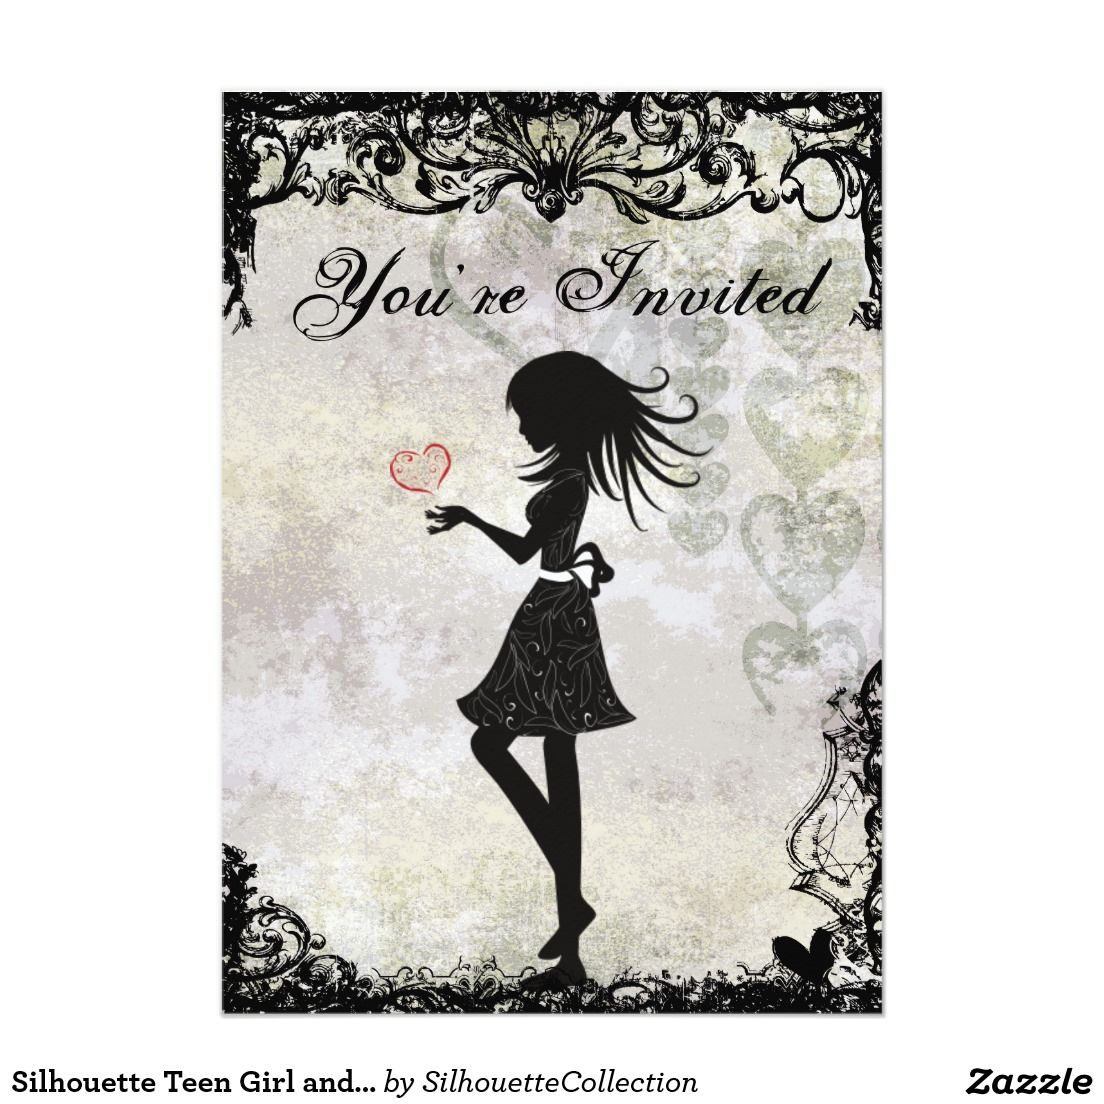 Silhouette teen girl and hearts birthday party 5x7 paper silhouette teen girl and hearts birthday party 5x7 paper invitation card bookmarktalkfo Gallery